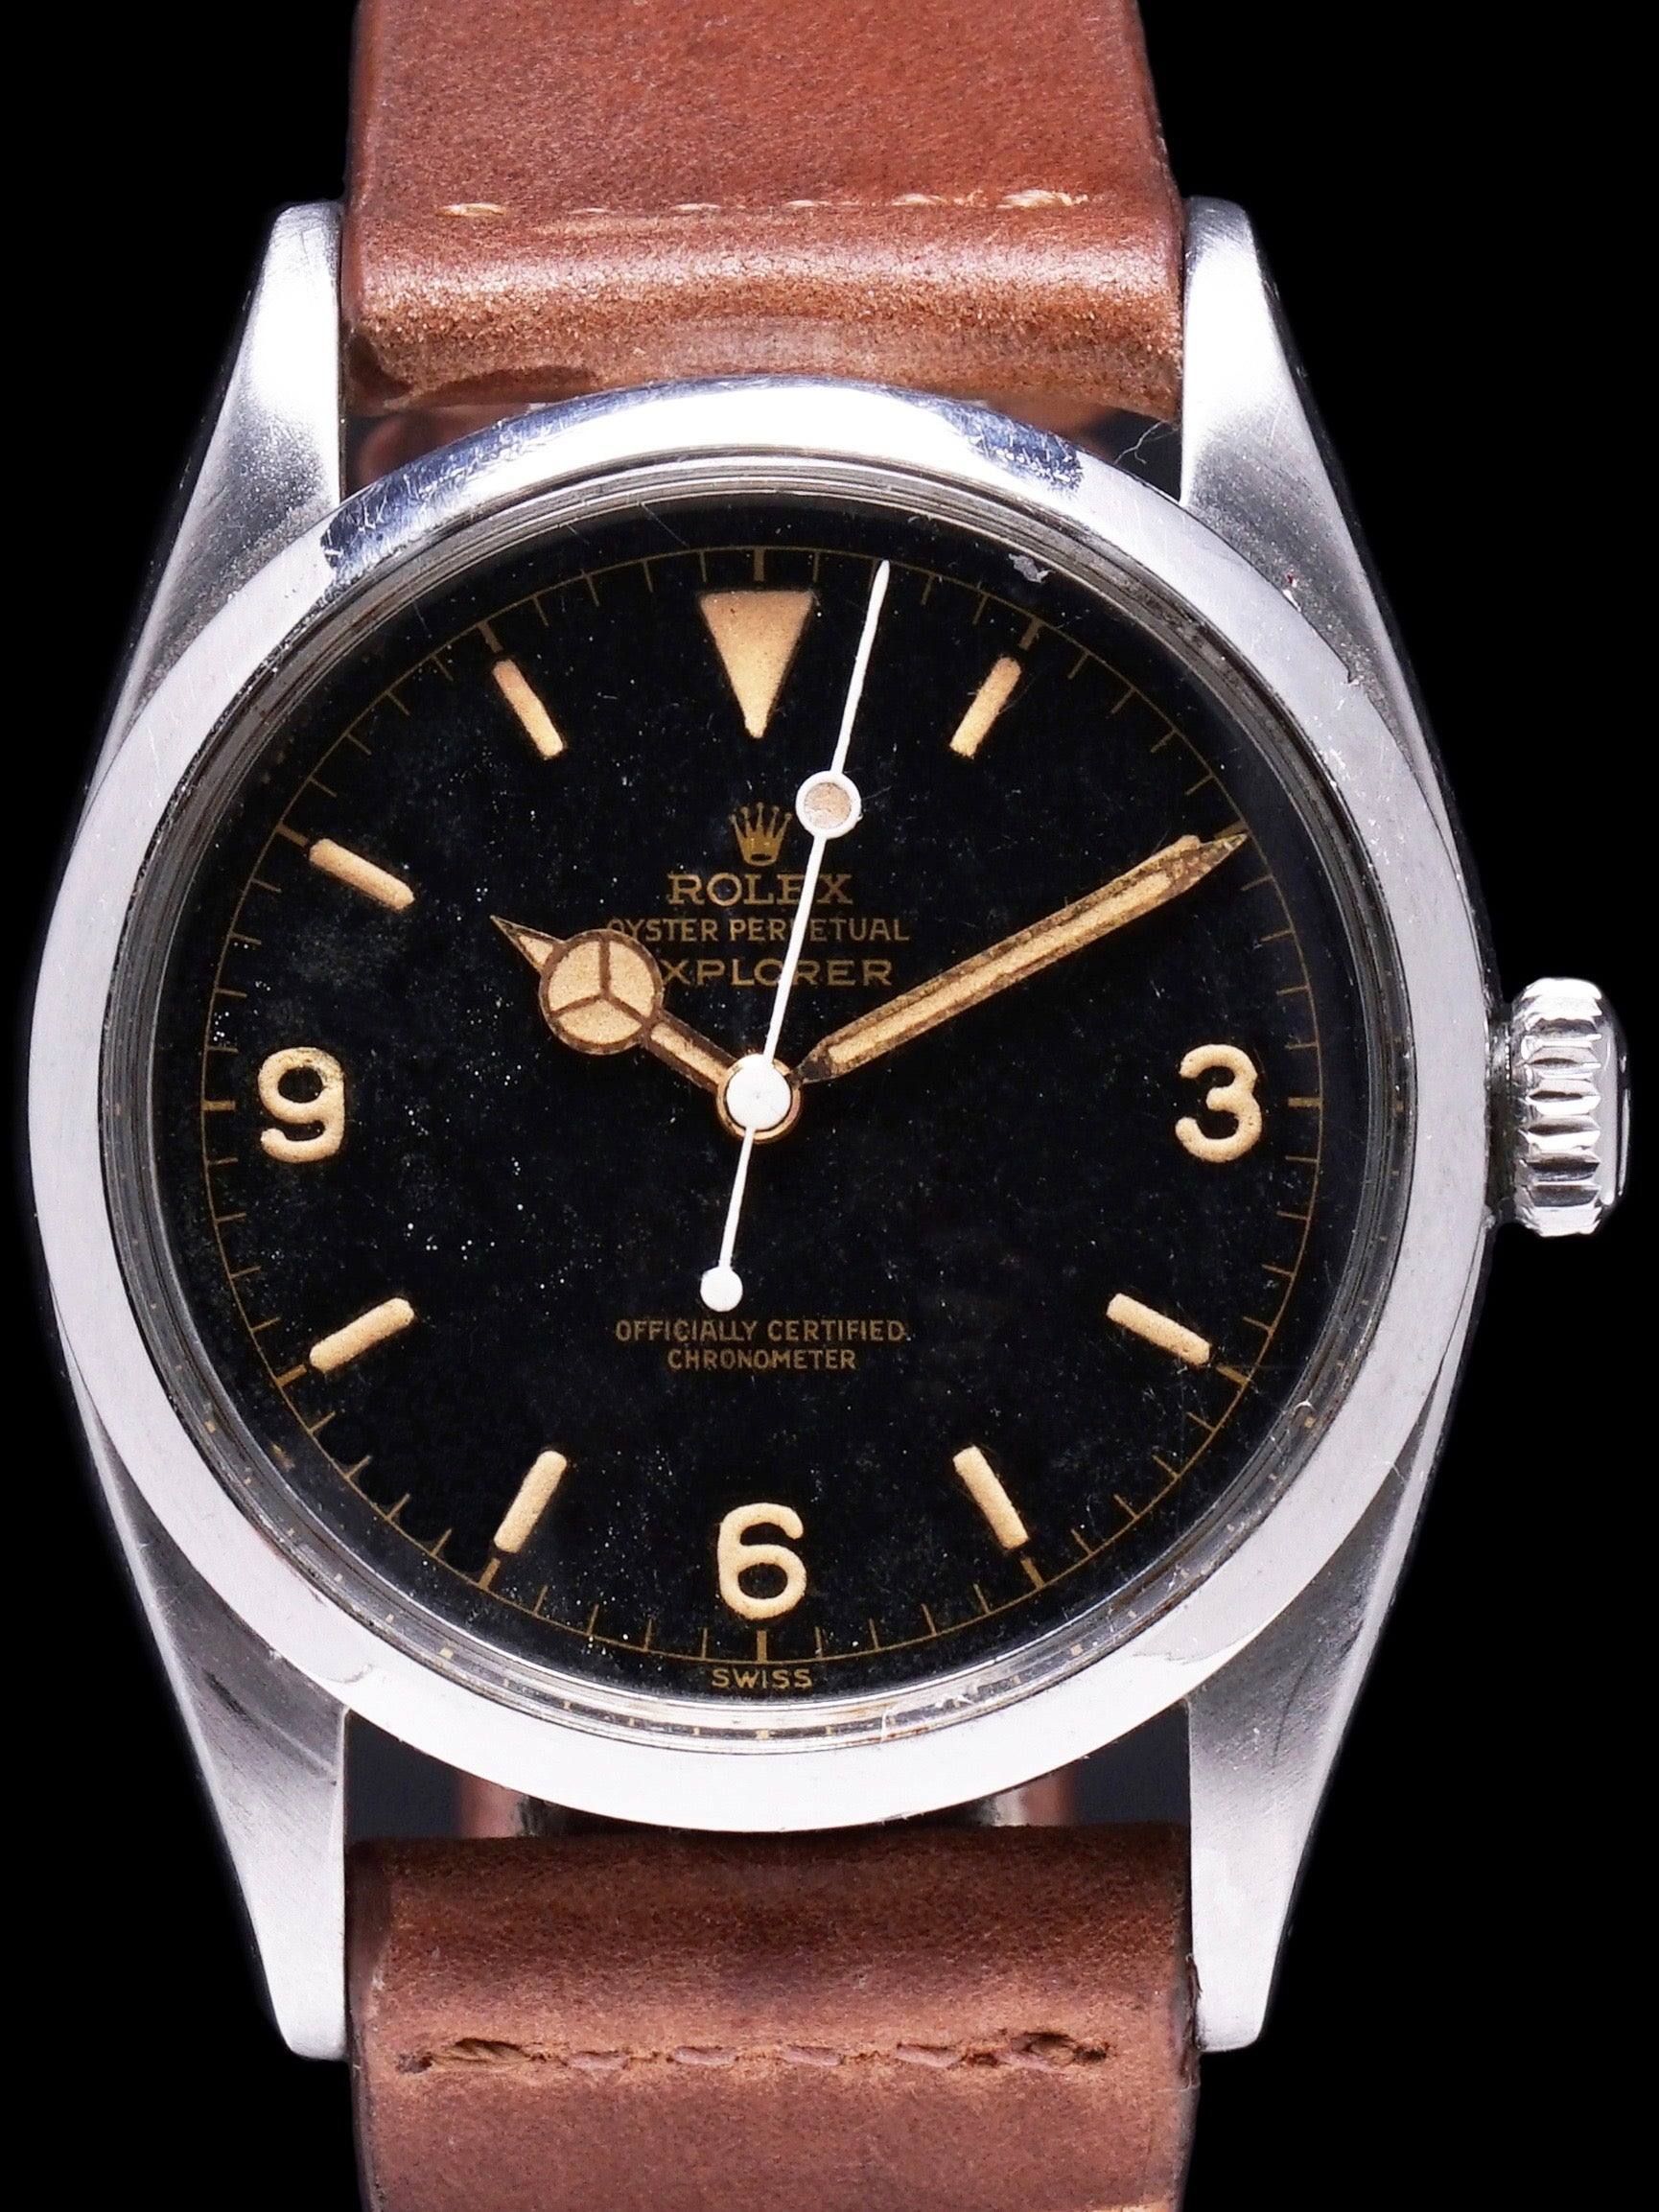 1958 Rolex Explorer I (Ref. 6610) GILT Chapter Ring